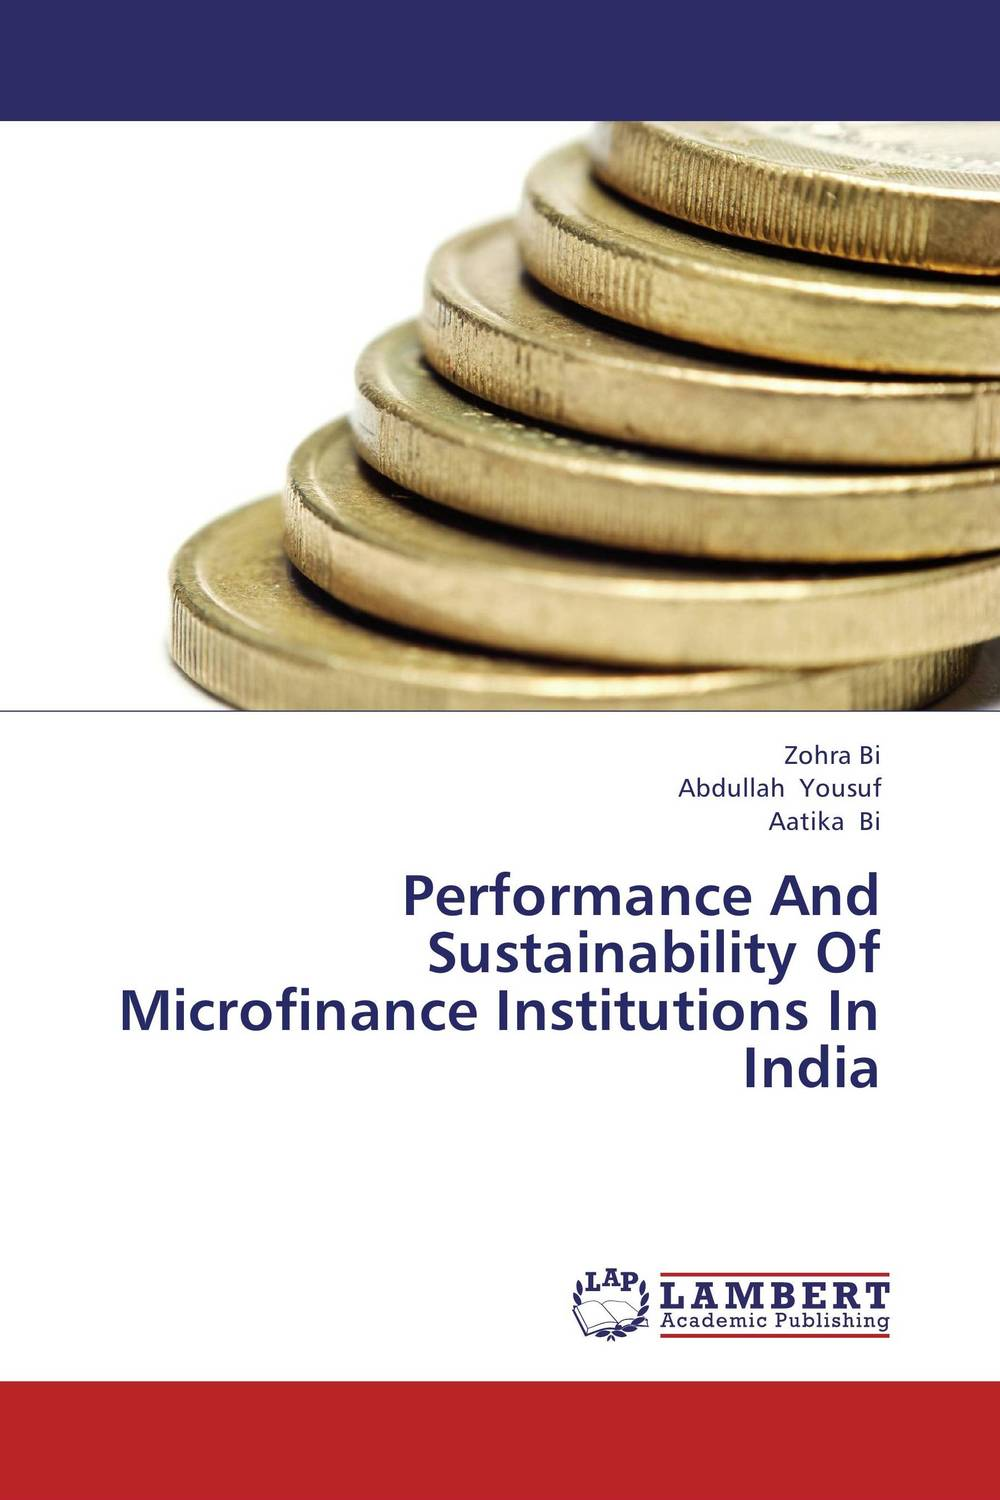 Performance And Sustainability Of Microfinance Institutions In India financial performance analysis of general insurance companies in india